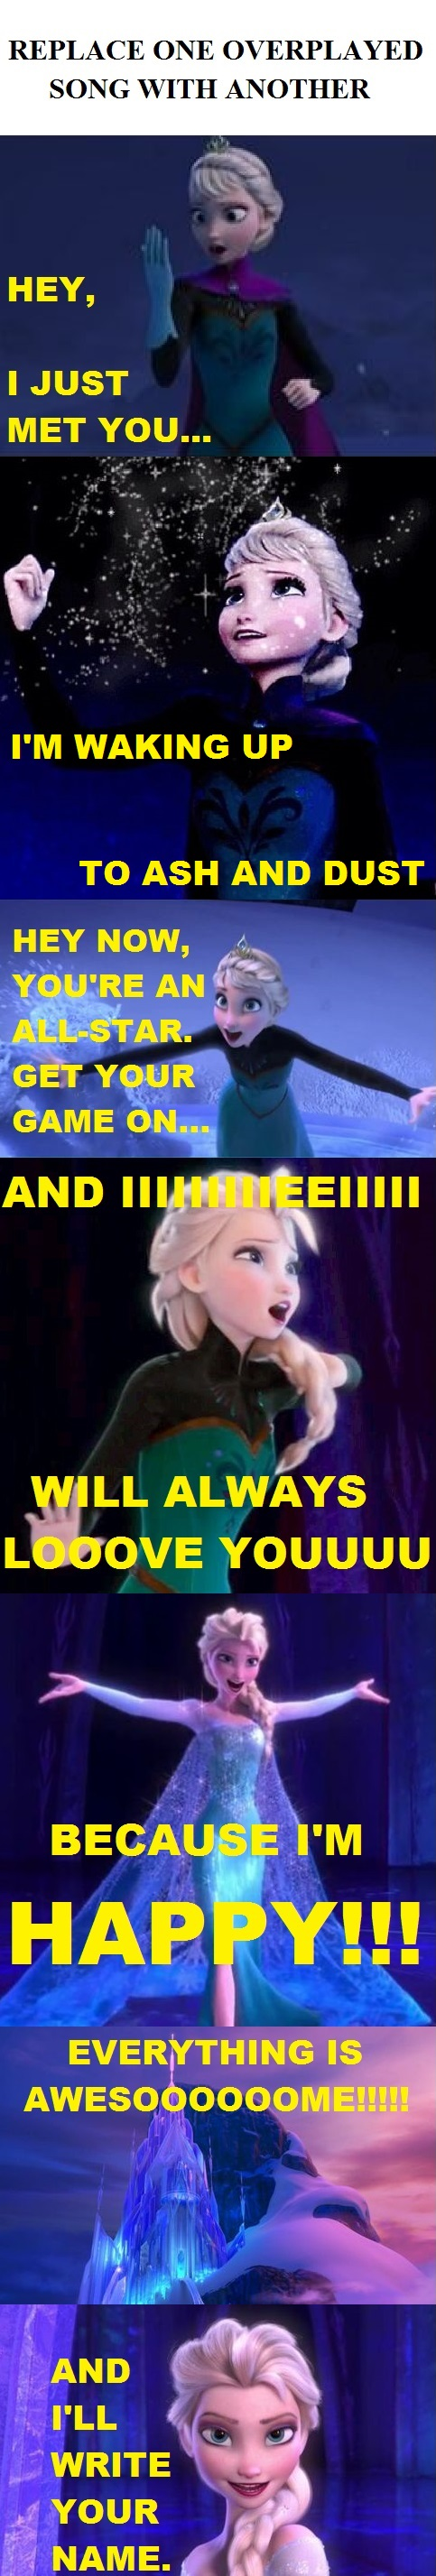 Frozen. Elsa. Not Let It Go.